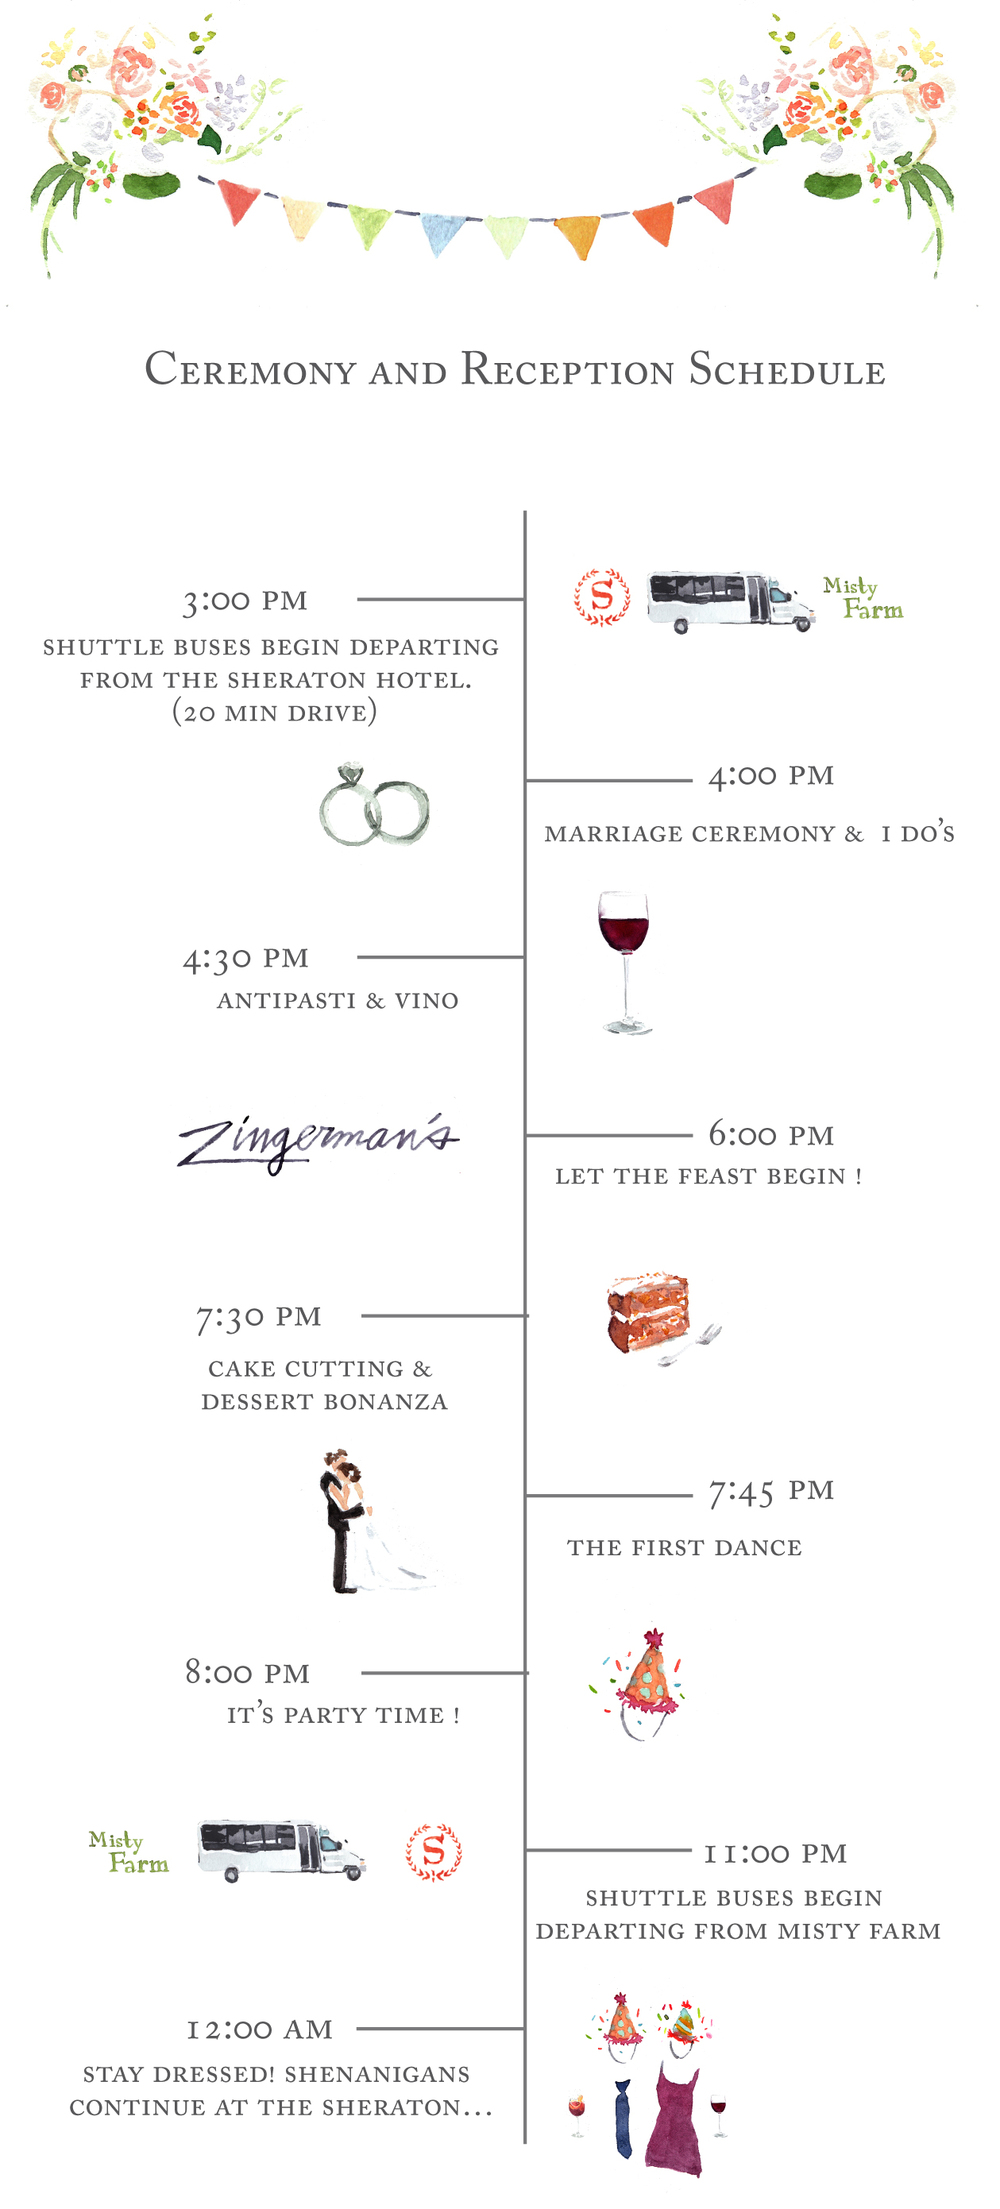 Wedding Schedule front for internet copy.jpg